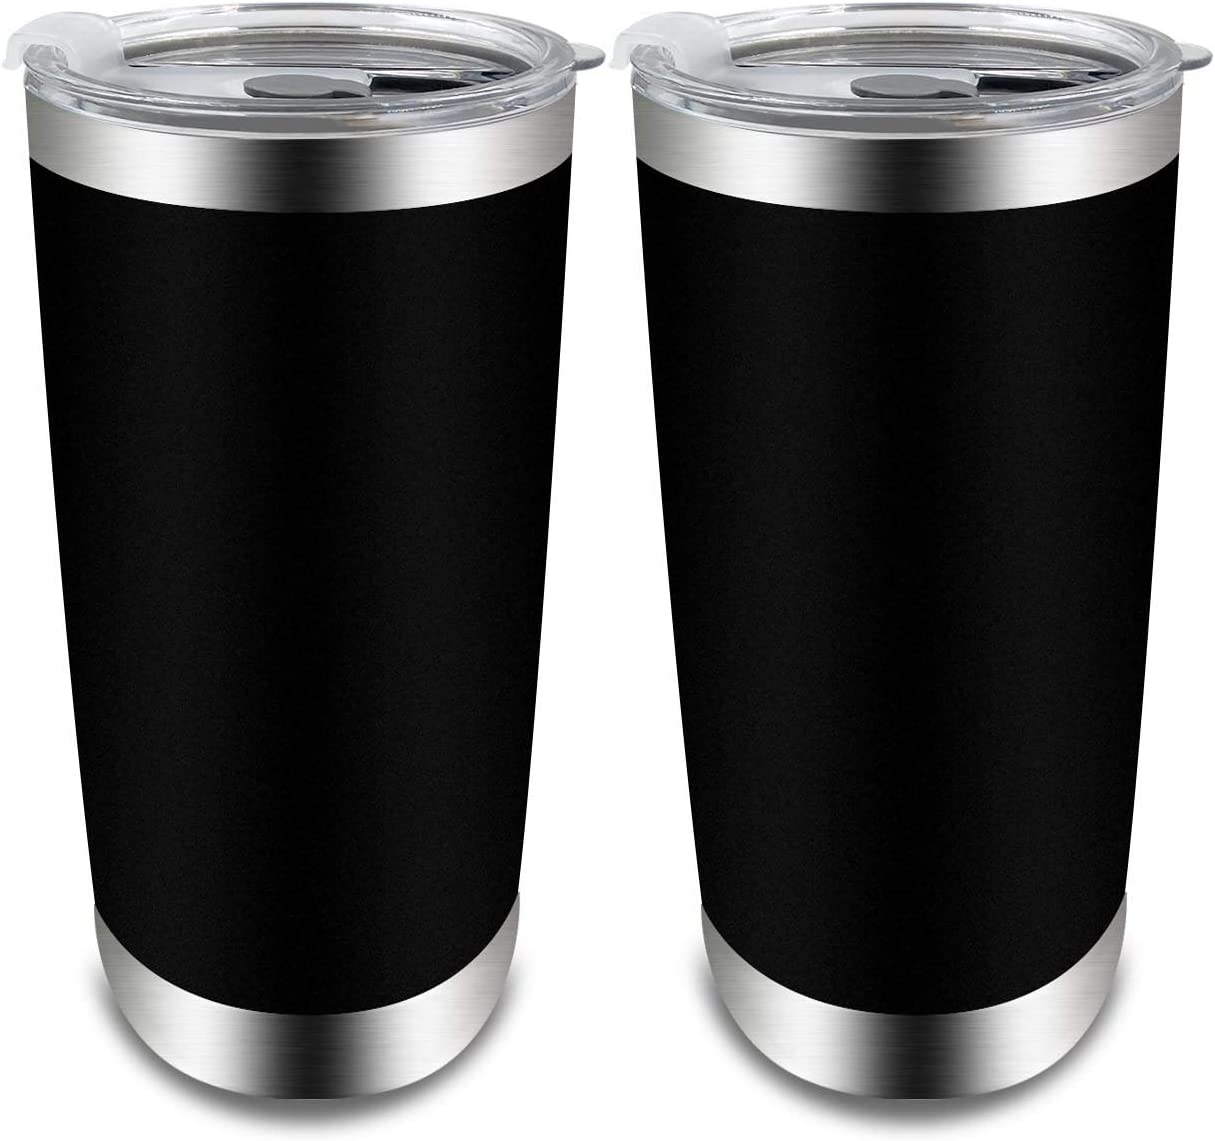 XccMe 20 oz Stainless Steel Tumbler Double Wall Vacuum with Lid Tumblers Travel Mug Coffee Cup for Home Office Outdoor Works Great for Ice Drinks and Hot Beverage(Black 2 Pack)